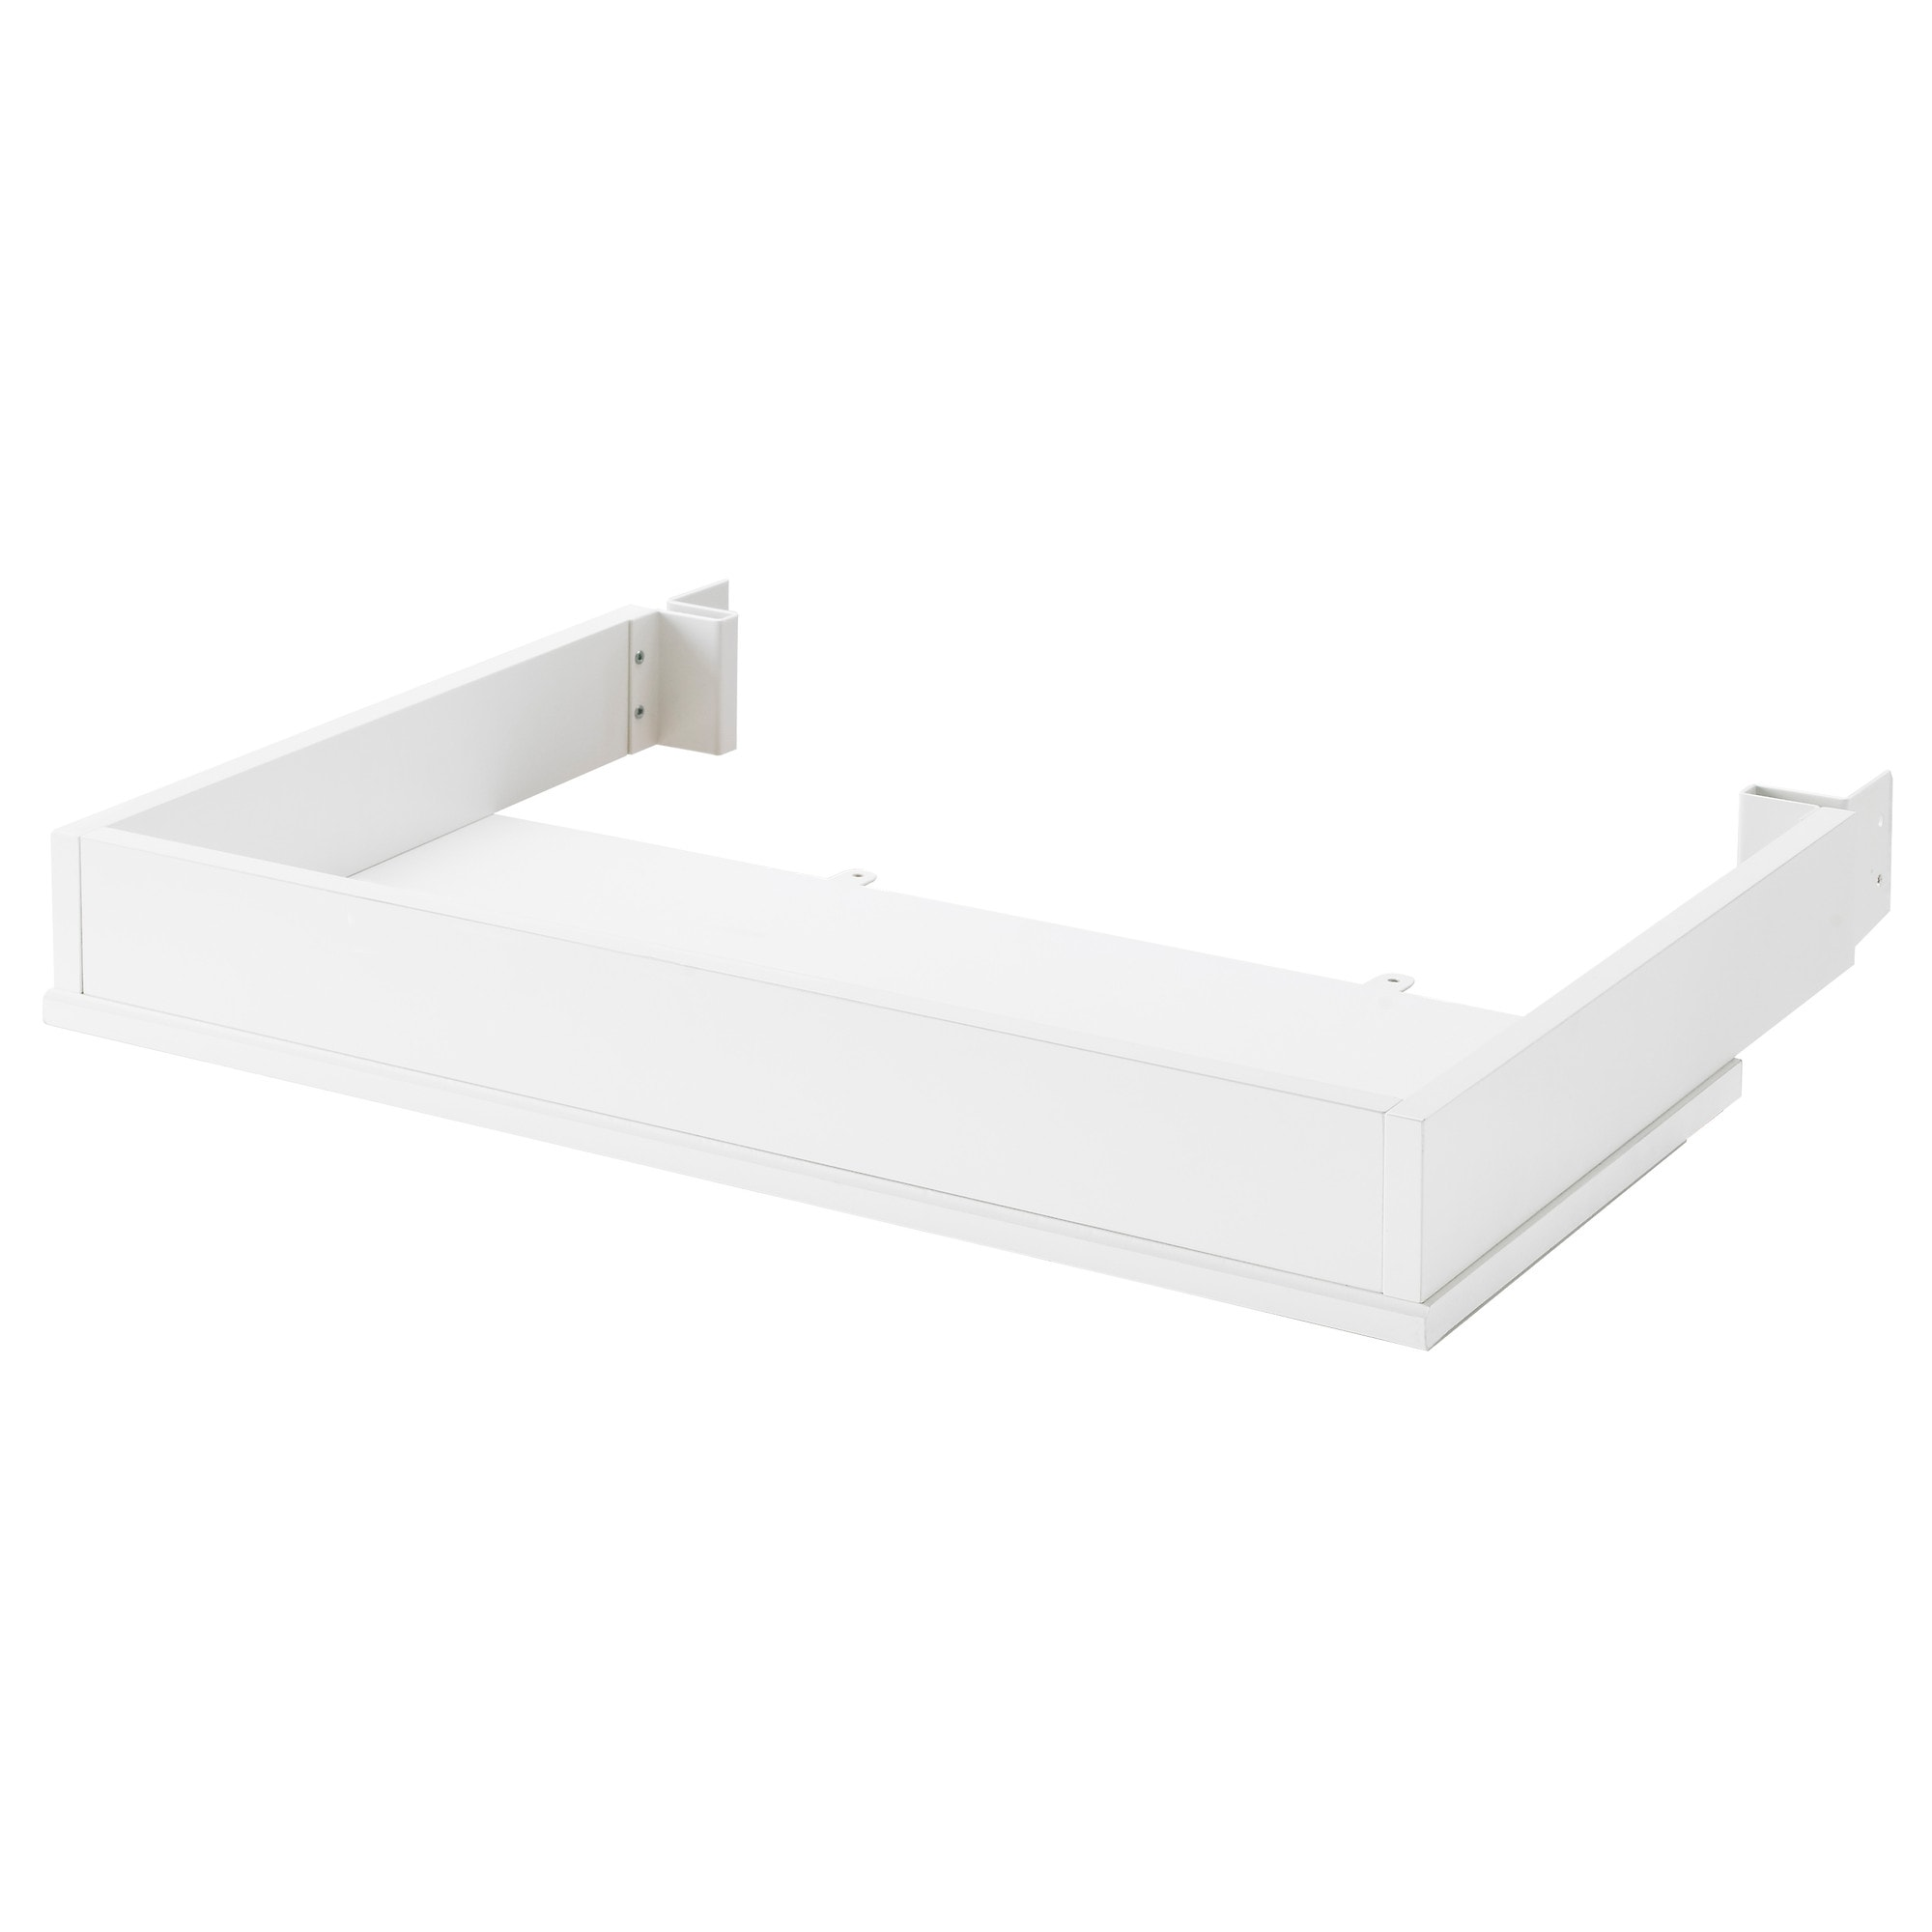 HENSVIK Changing table top - IKEA